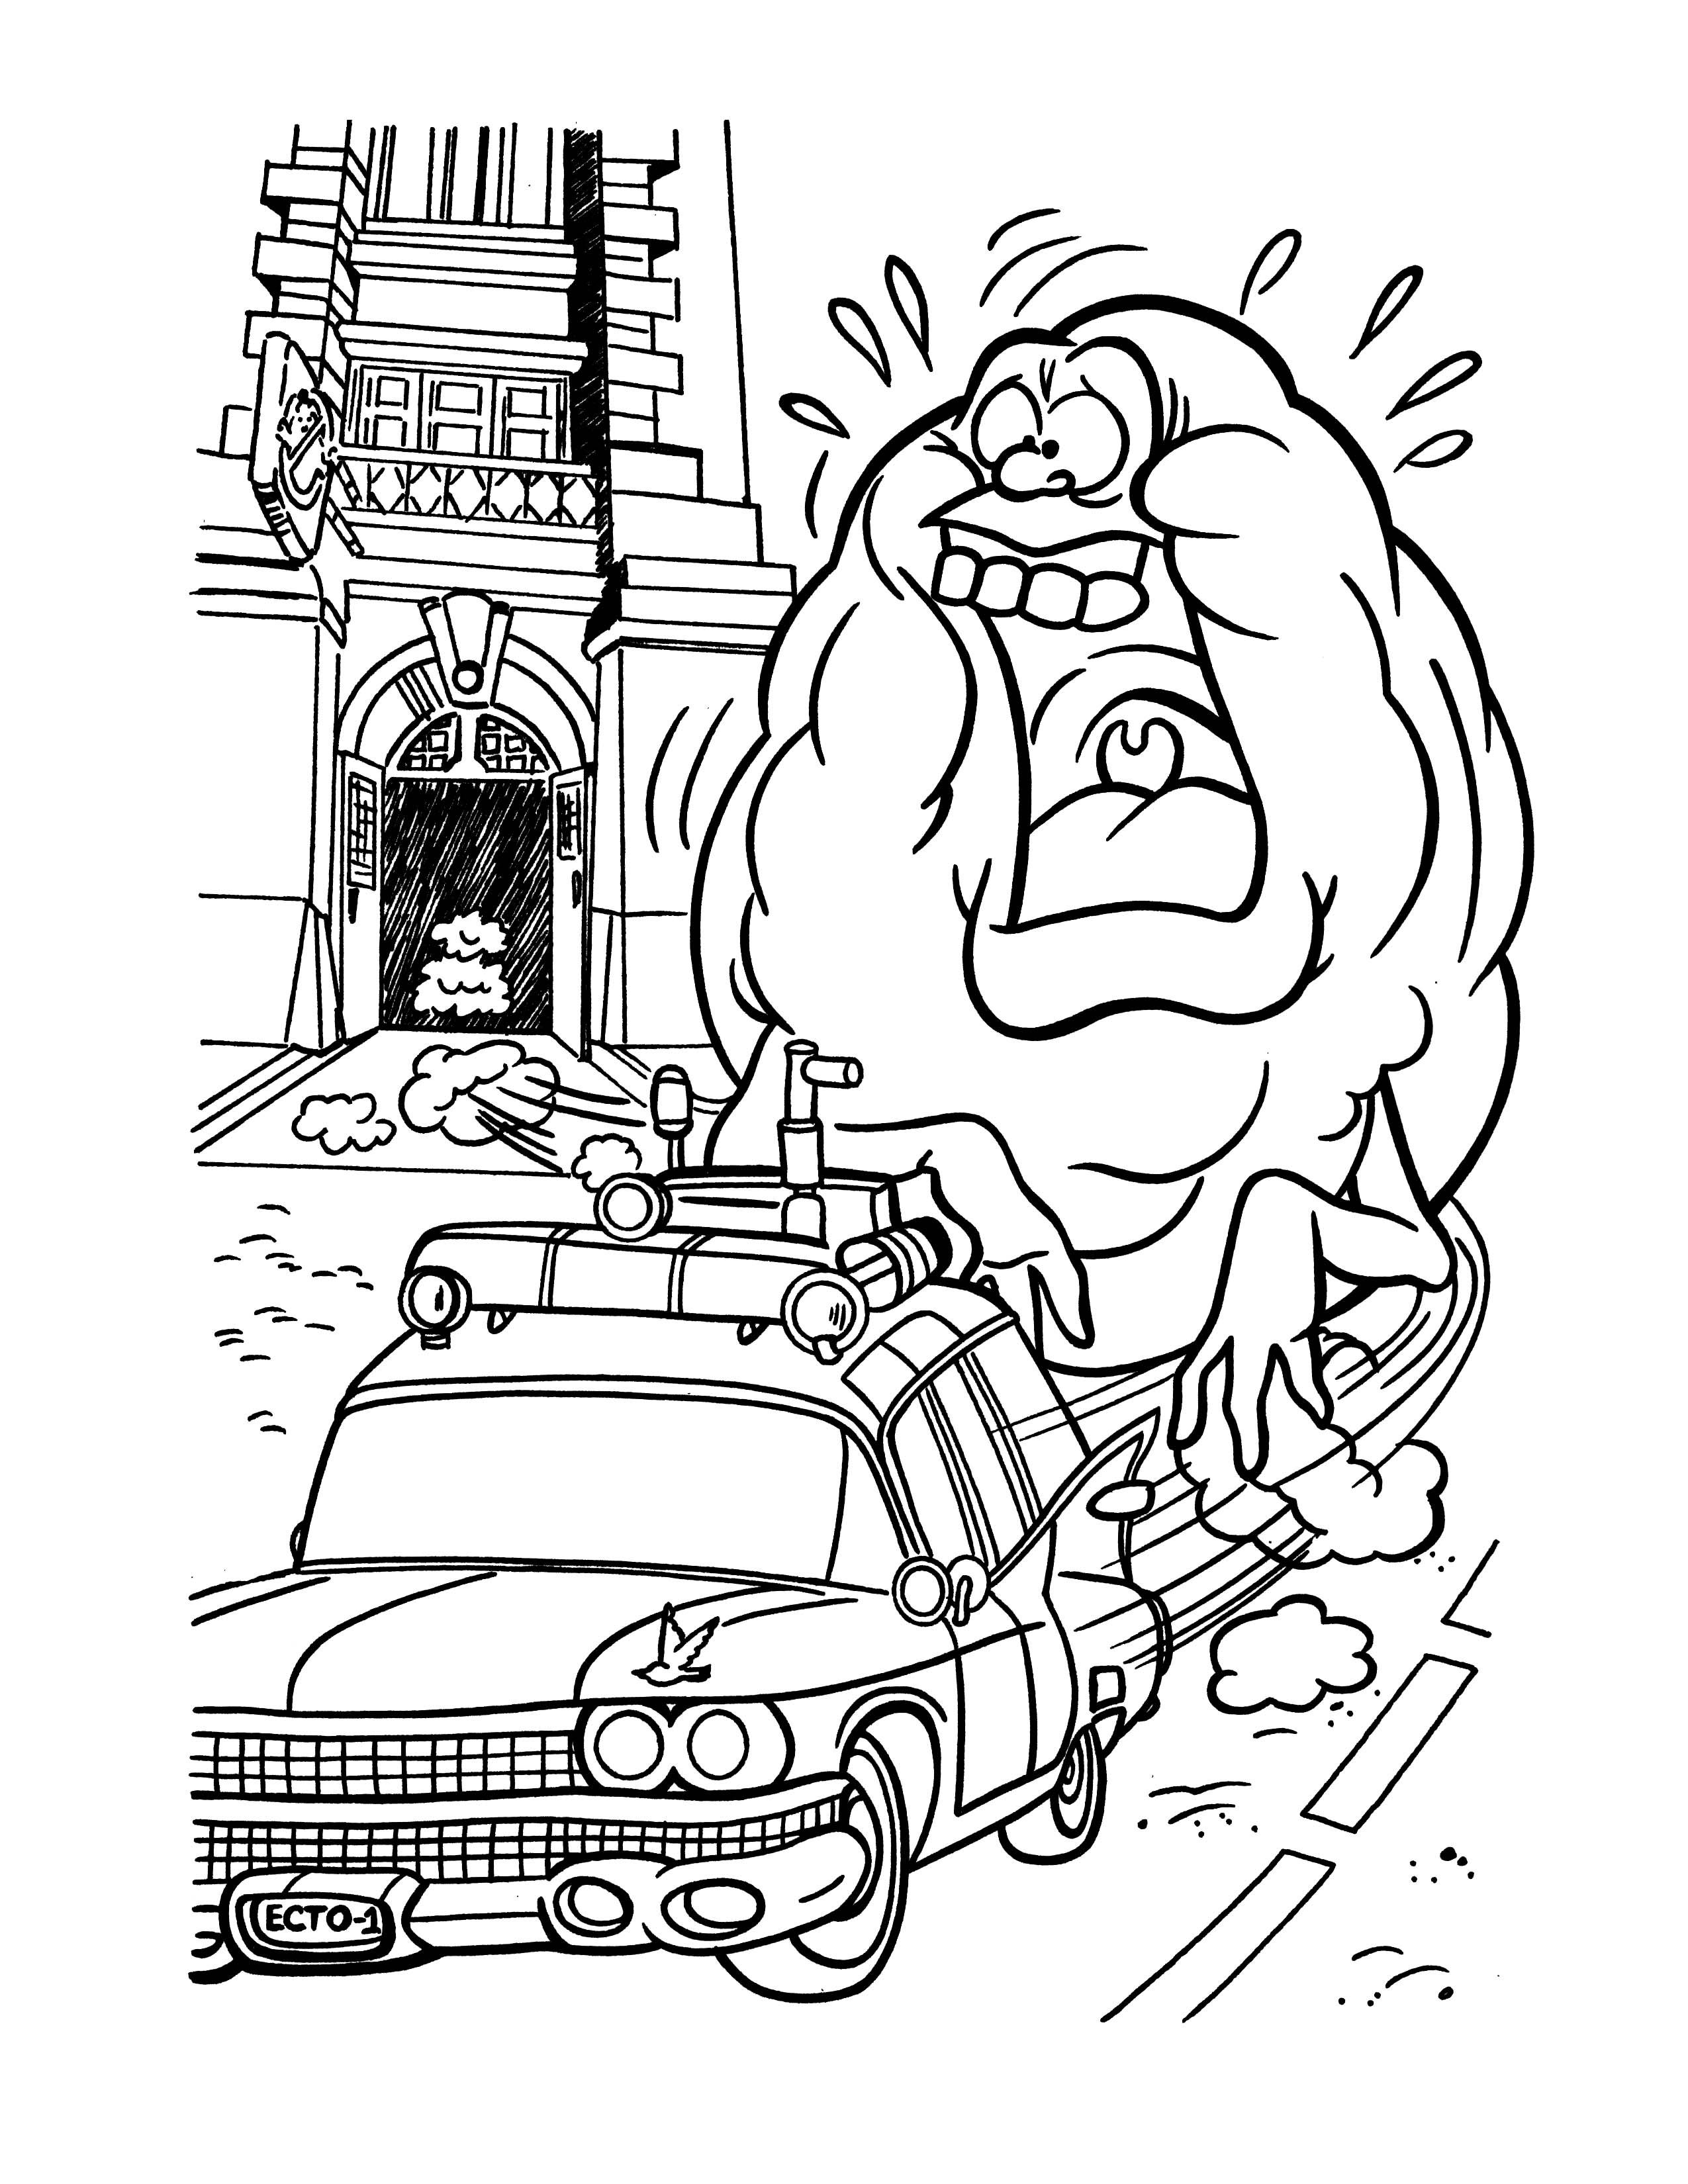 Ghostbusters Colouring Pages Page Ghostbuster Coloring Pages Cartoon Coloring Pages Lego Coloring Pages Coloring Pages